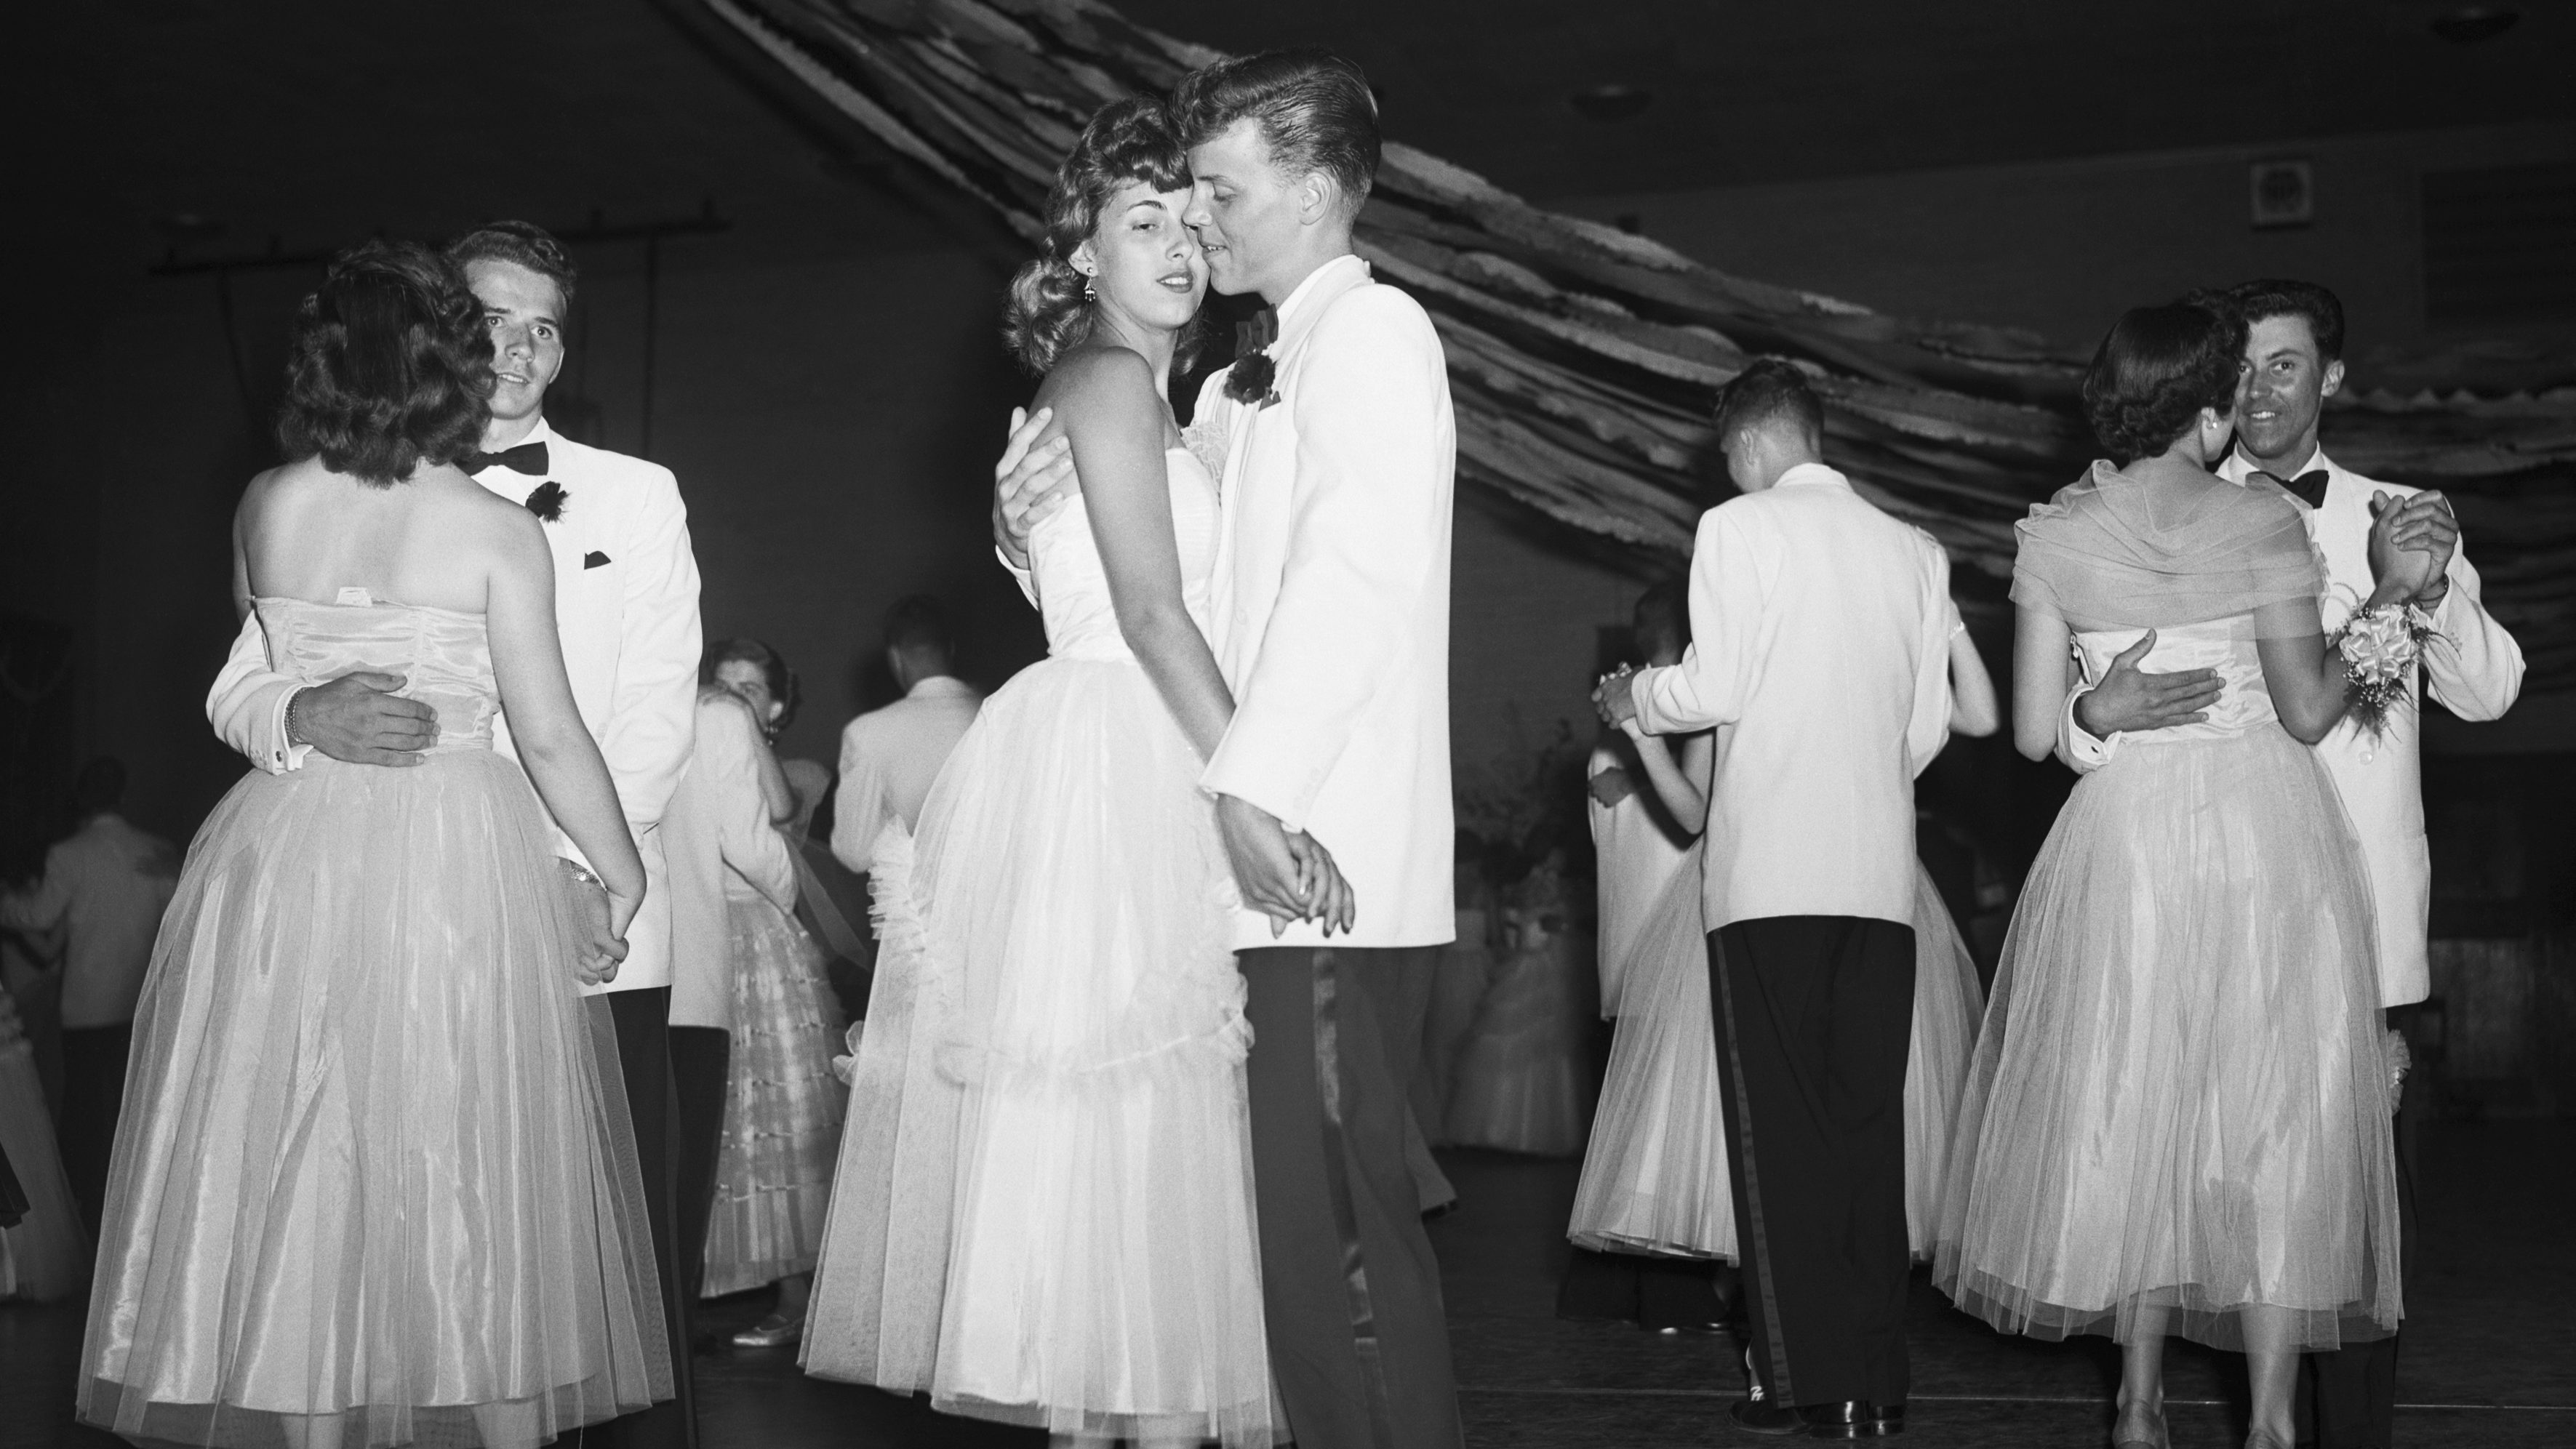 The prom dress: An anthropological history